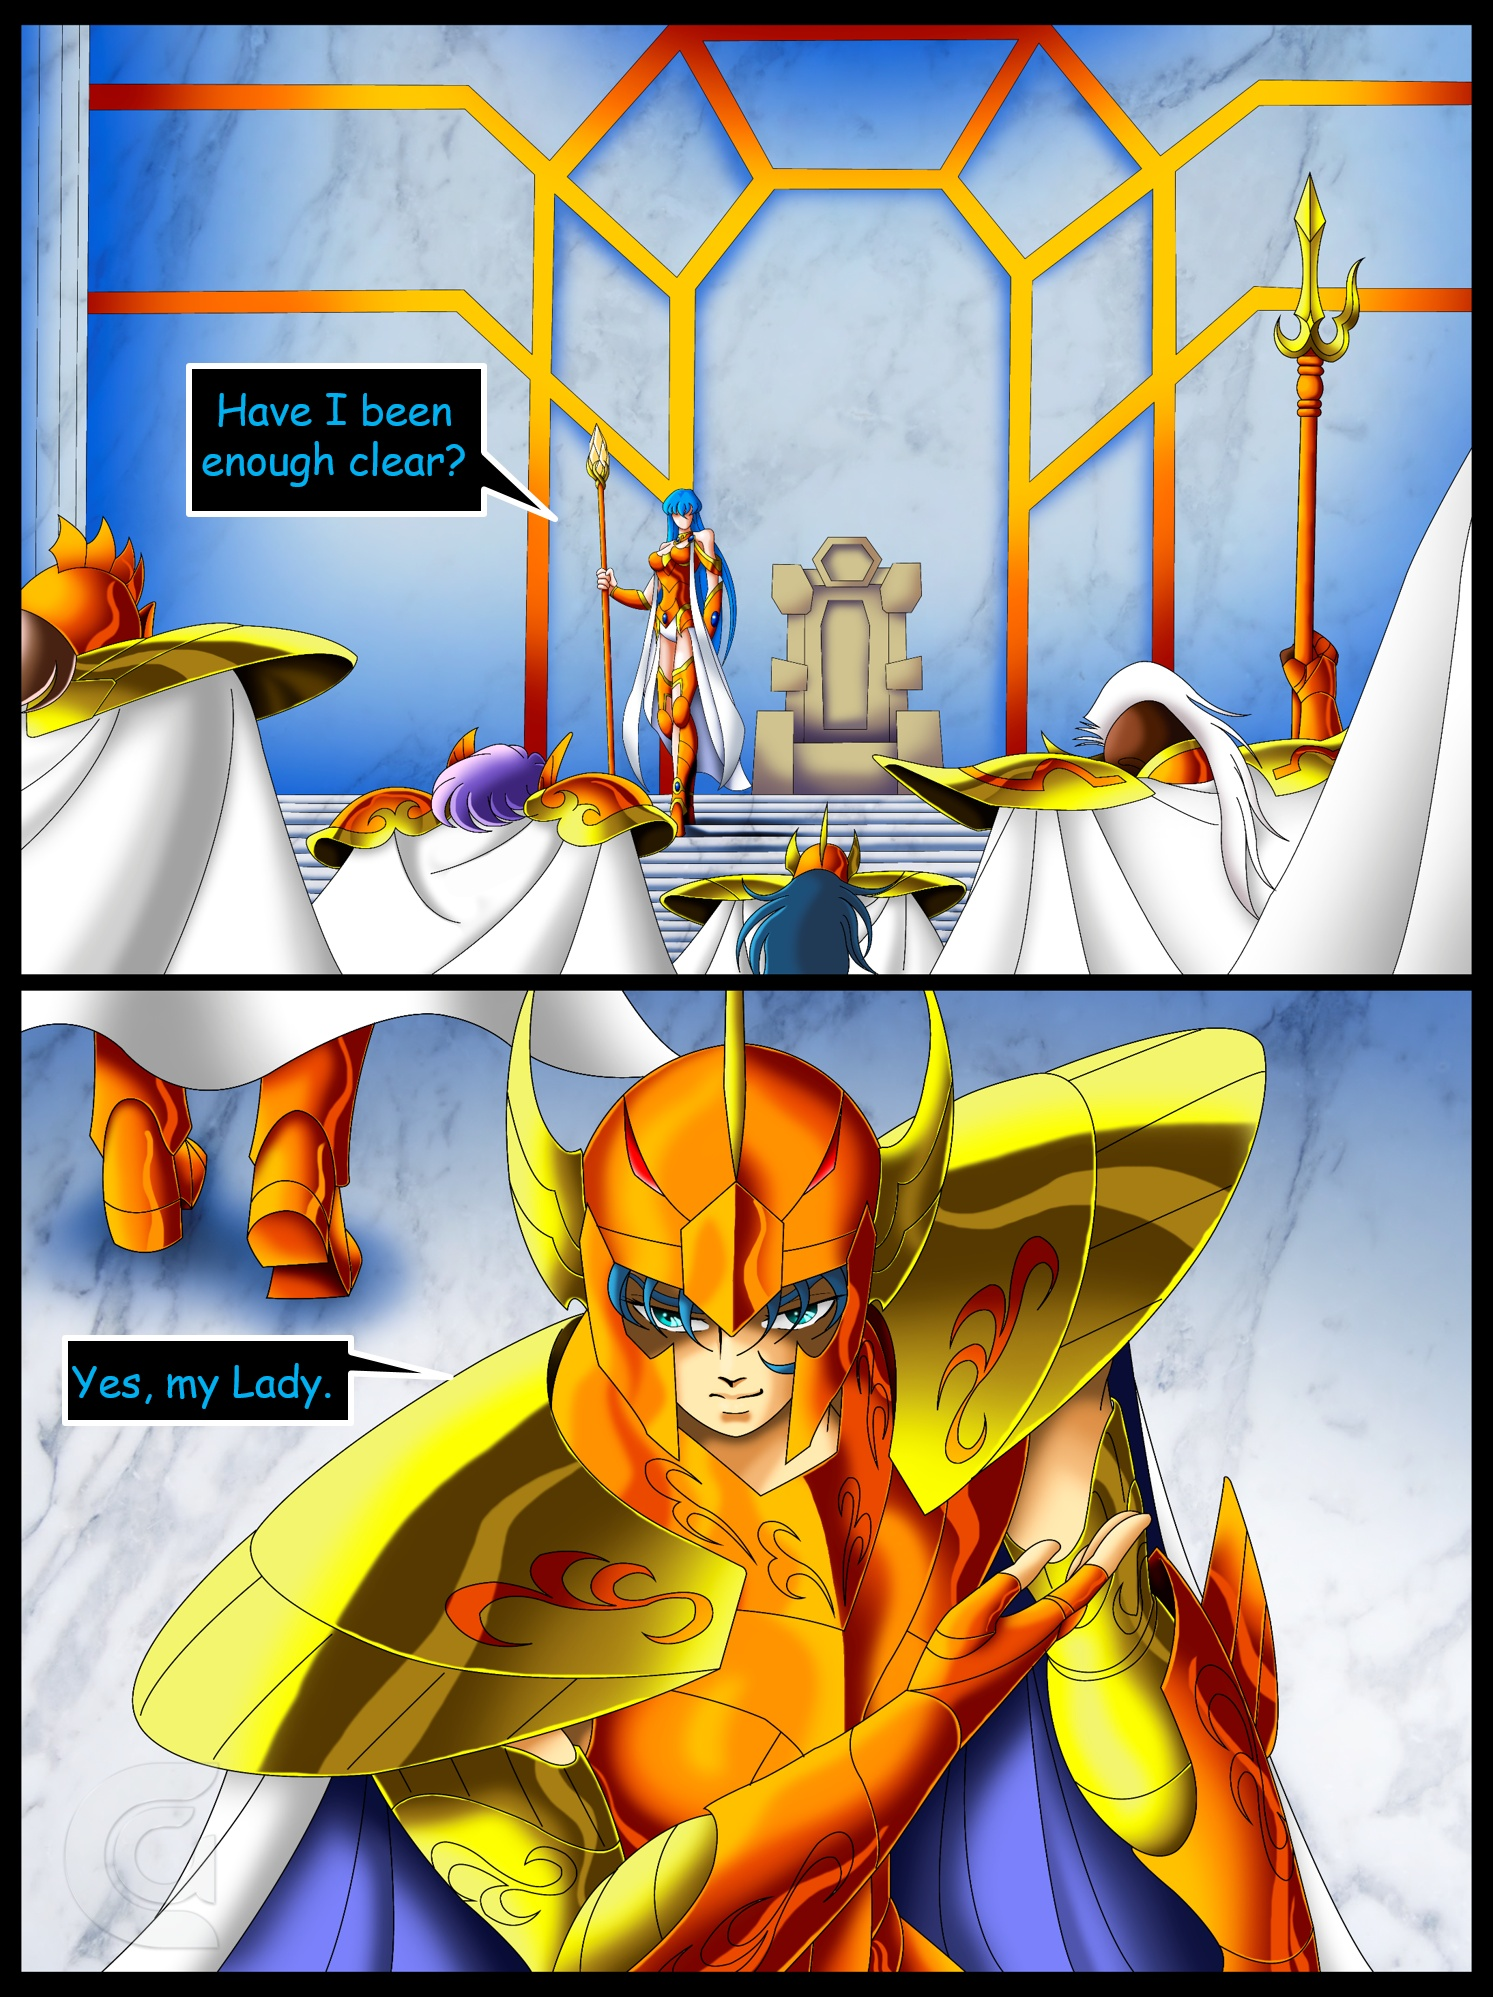 Saint Seiya Atlantis  Chapter 3  Division  Fancomics by